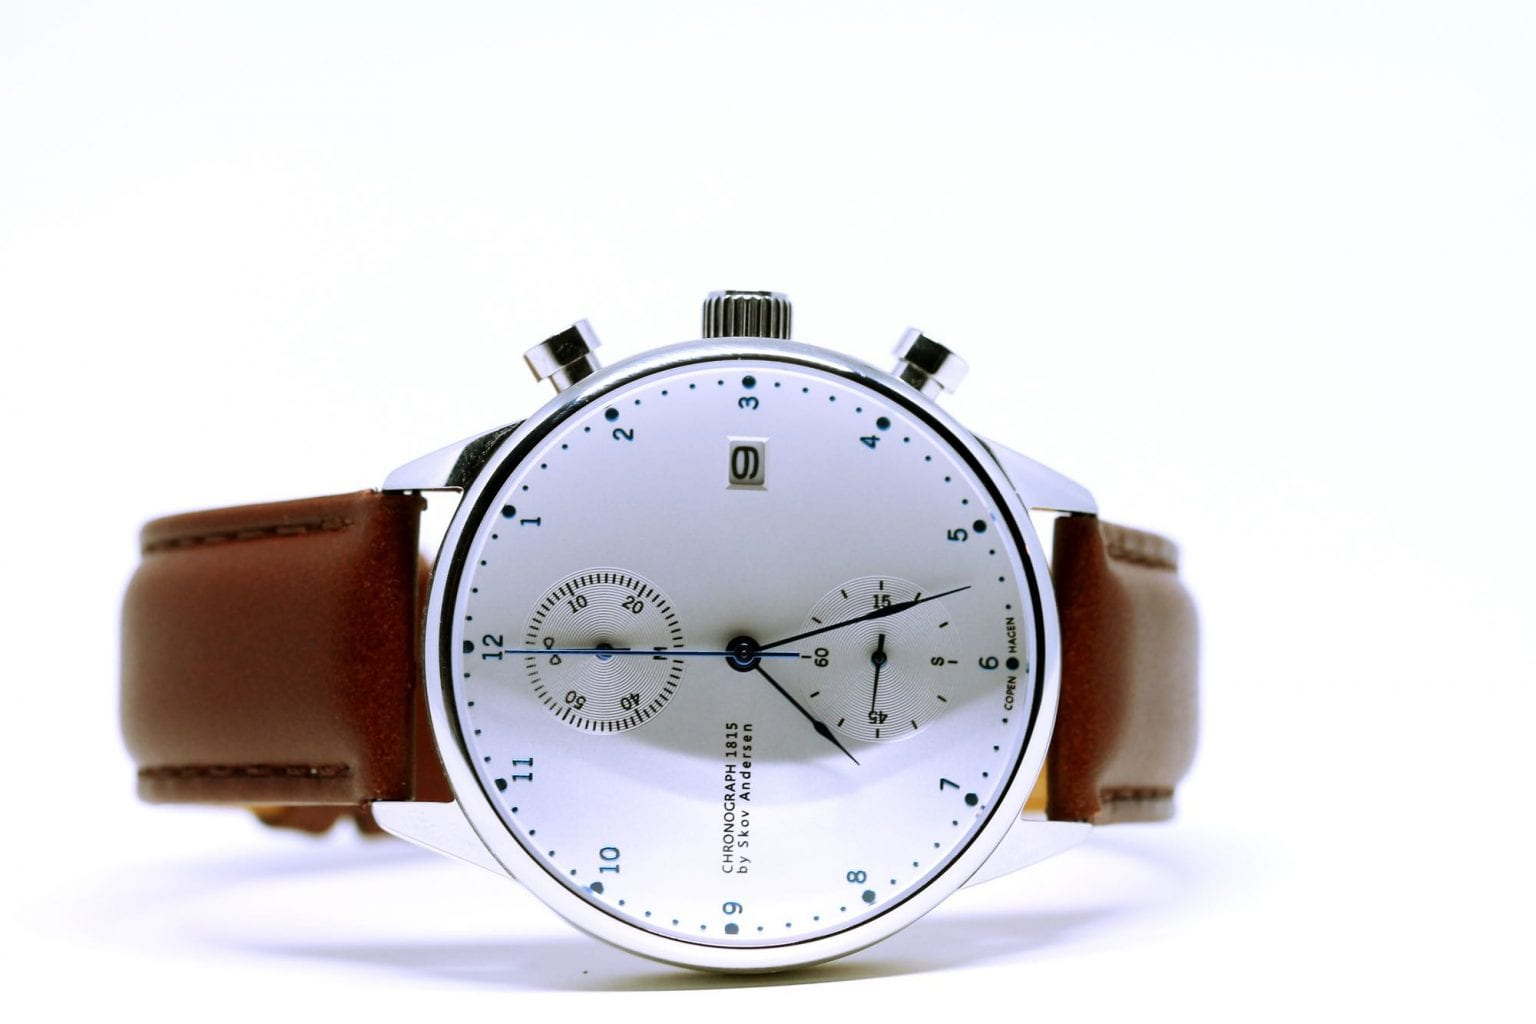 About Vintage Timepiece